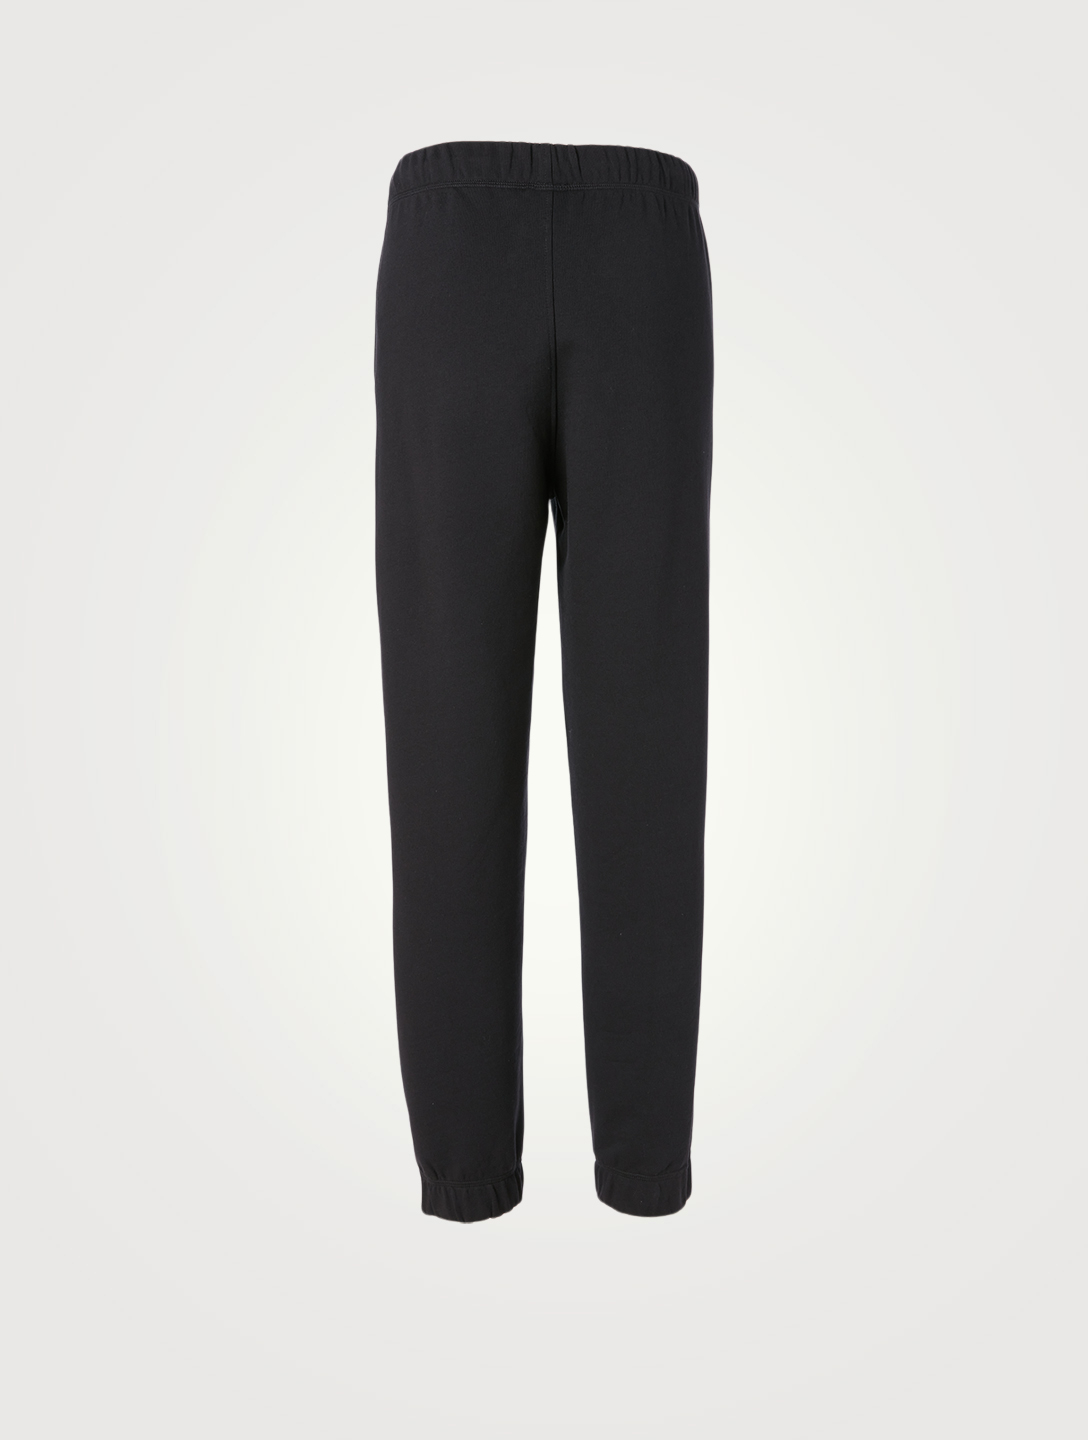 GANNI Pantalon de molleton Software Isoli Femmes Noir